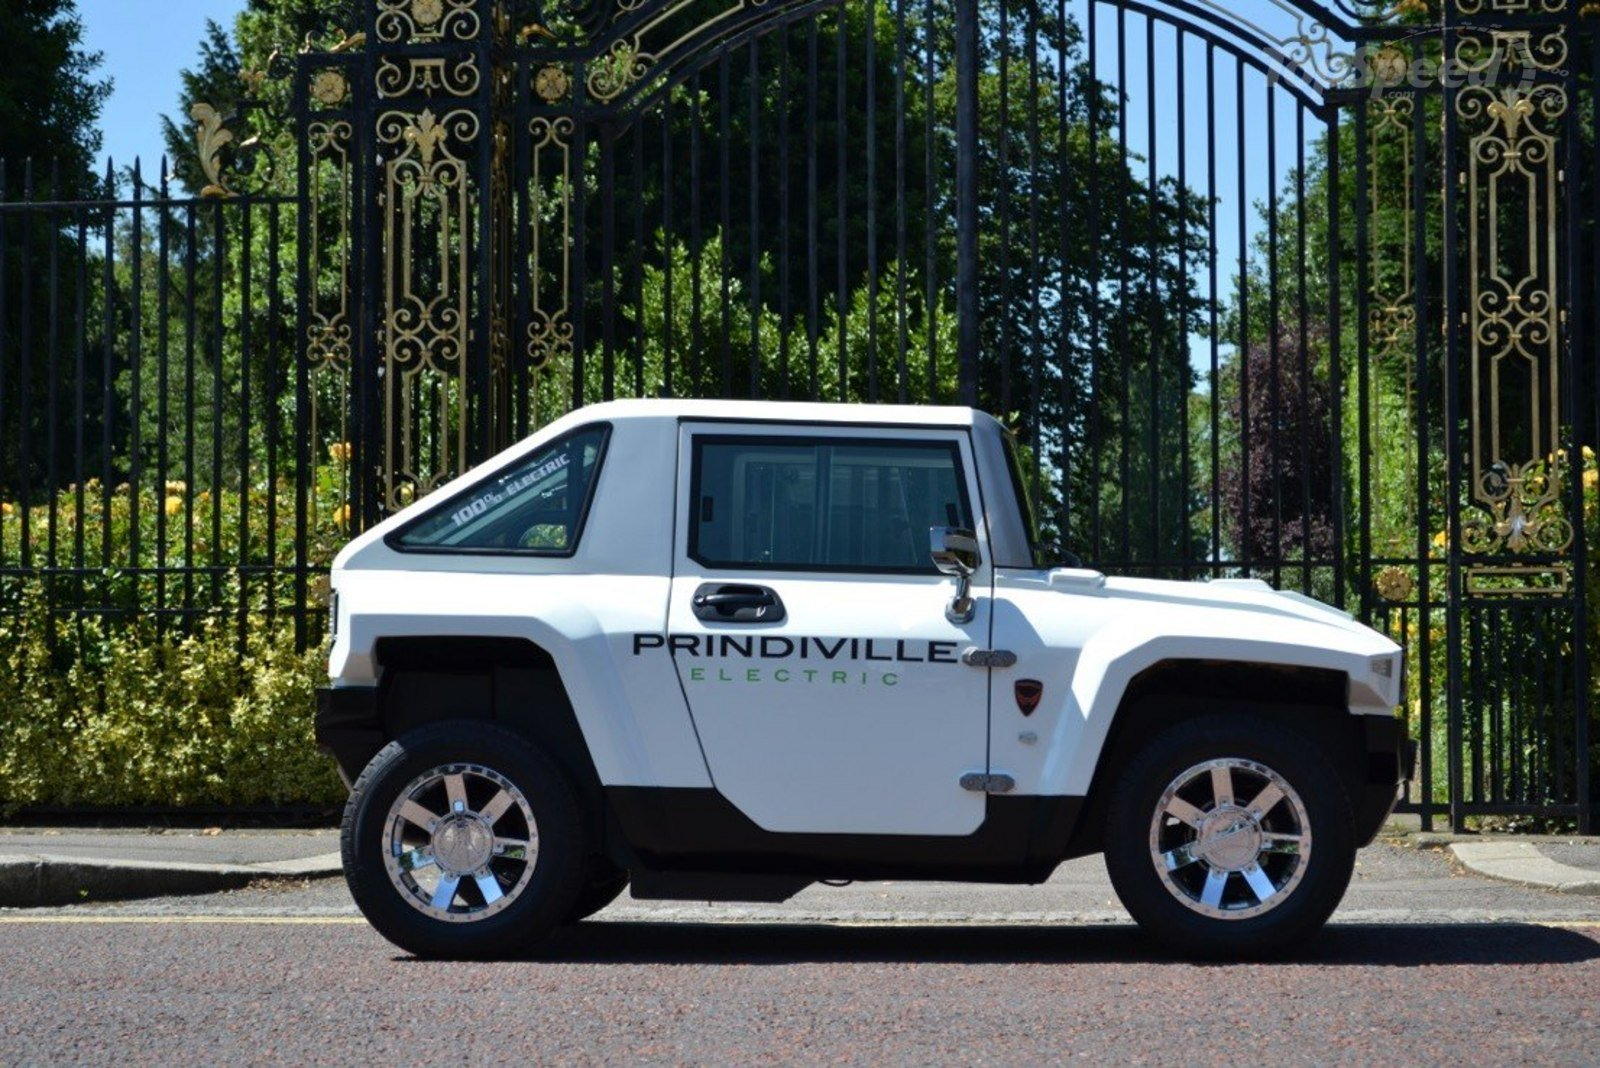 Hummer Cars: Models, Prices, Reviews, News, Specifications ... | 2013 hummer price